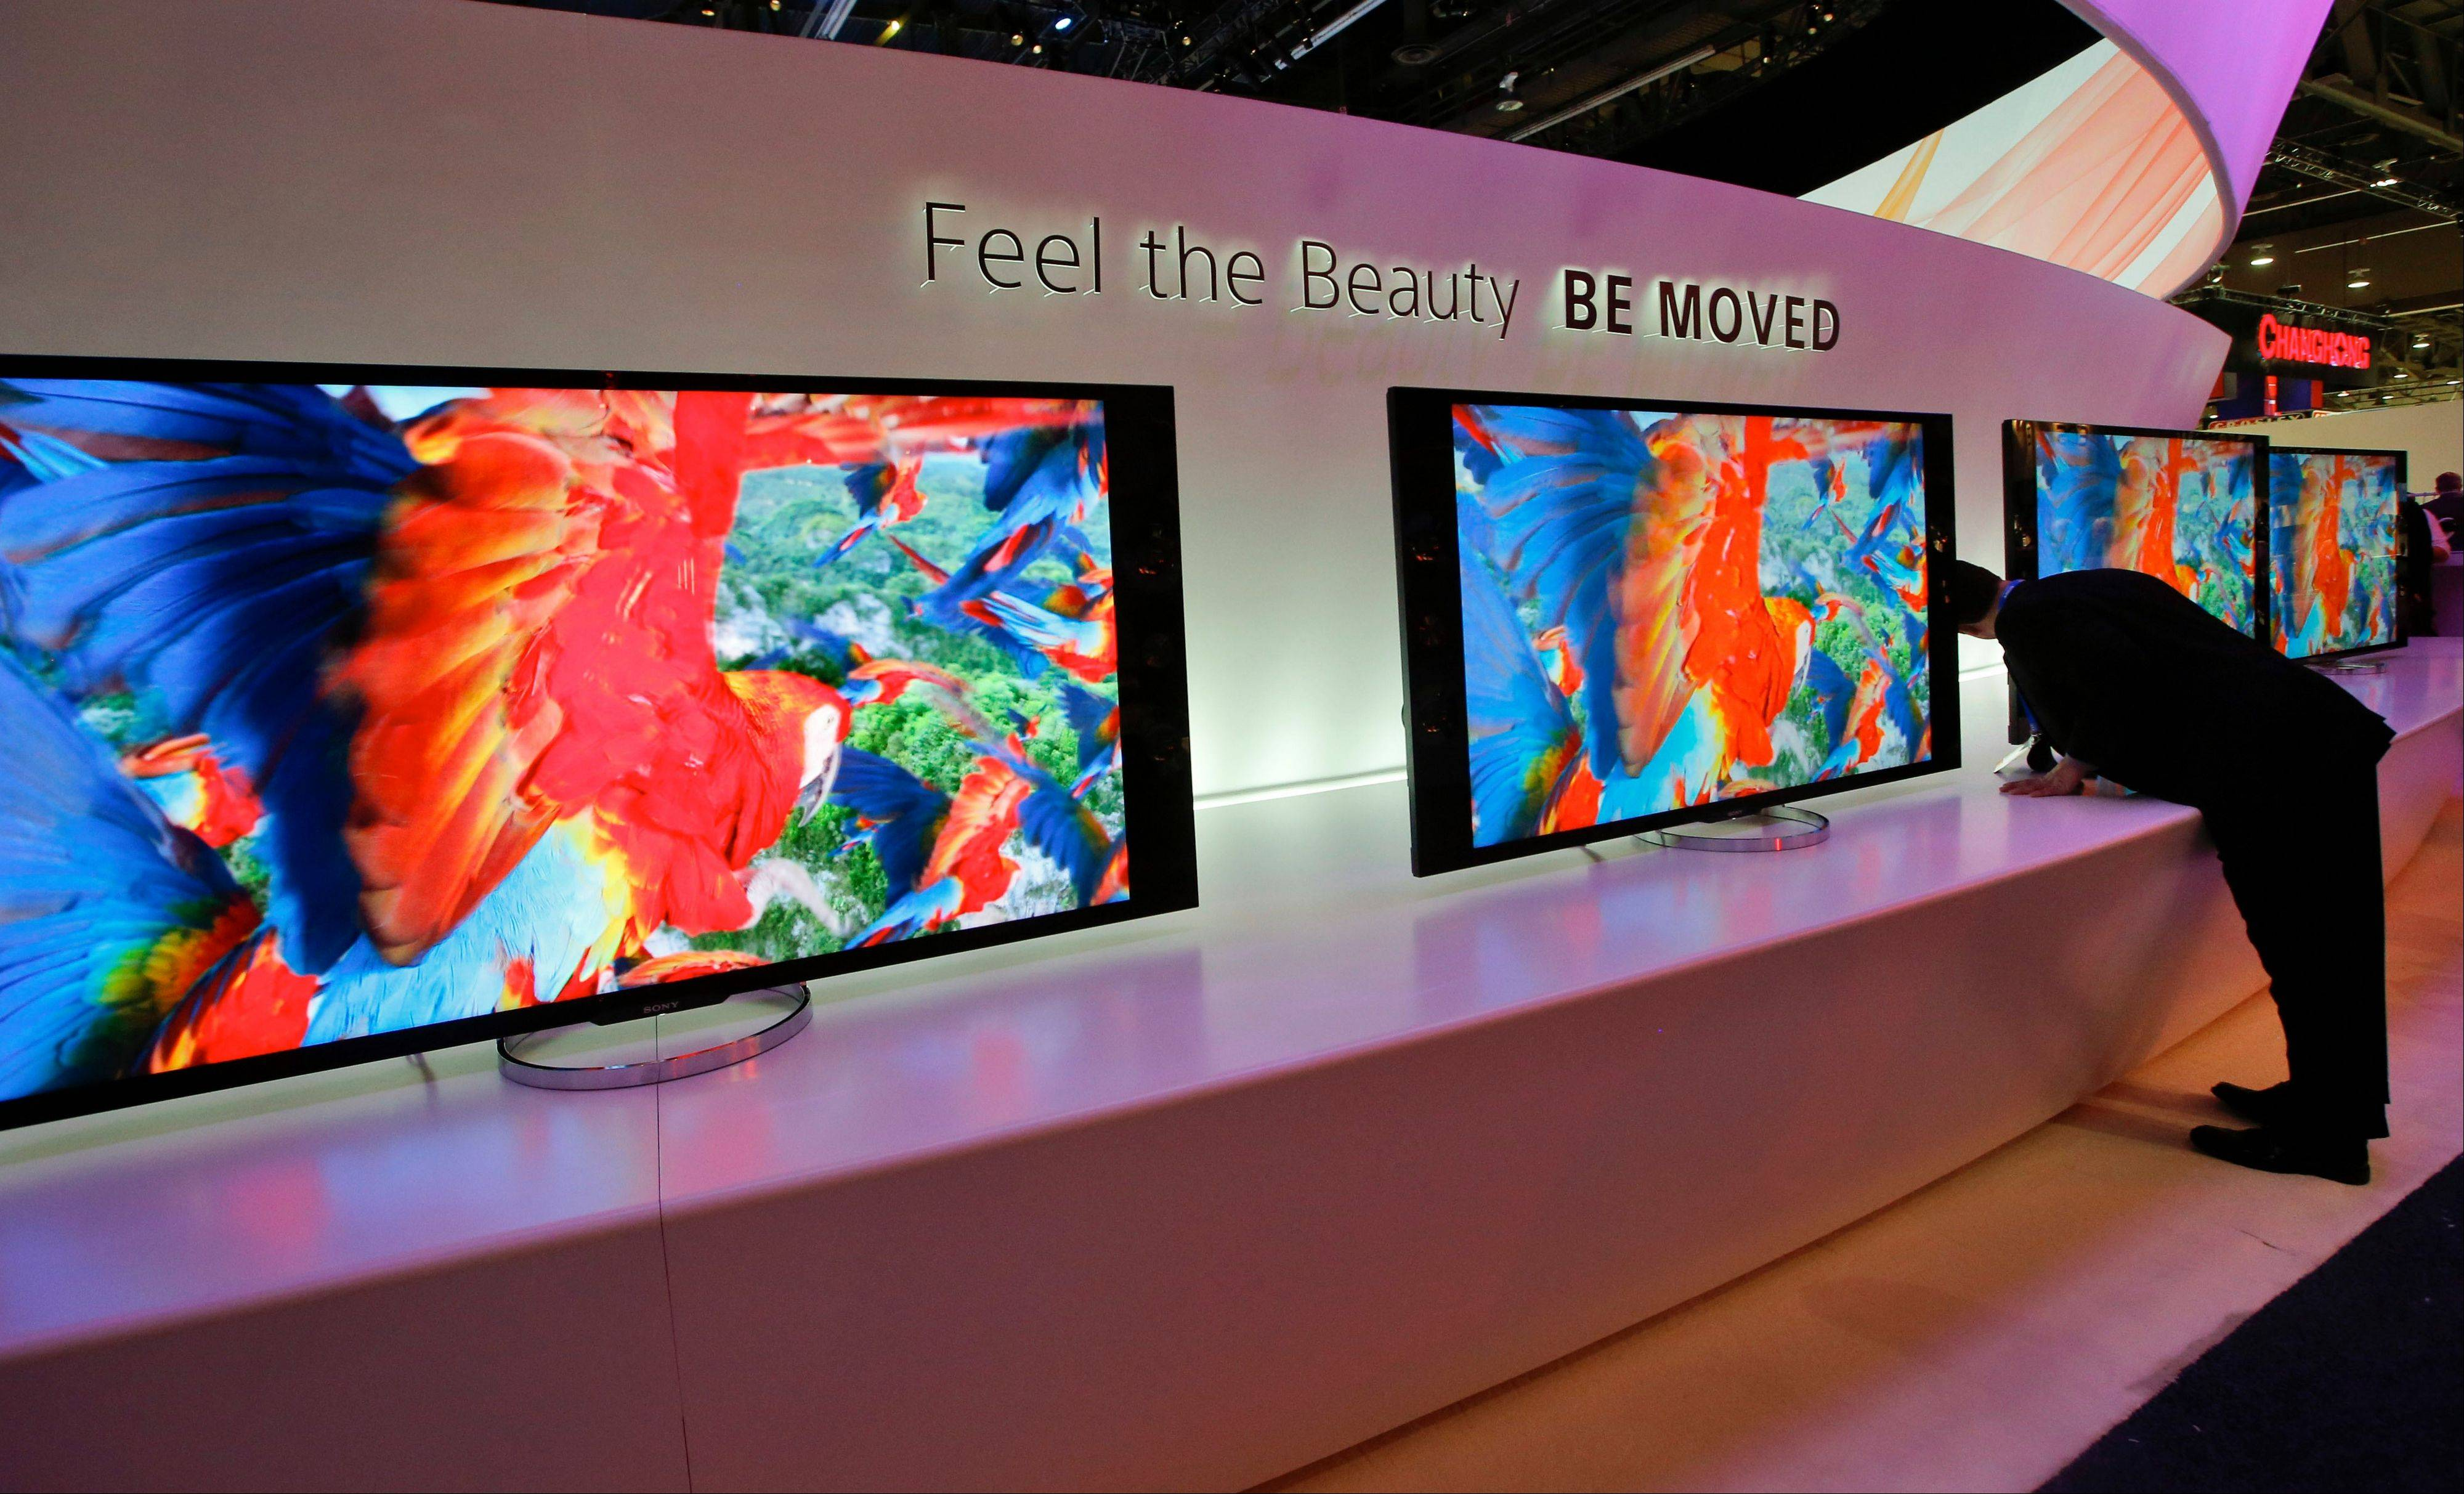 Associated PressVito Anzalone, far right, looks at the back of Sony's 4K XBR LED televisions at the Sony booth during a news conference at the International Consumer Electronics Show in Las Vegas, Monday.